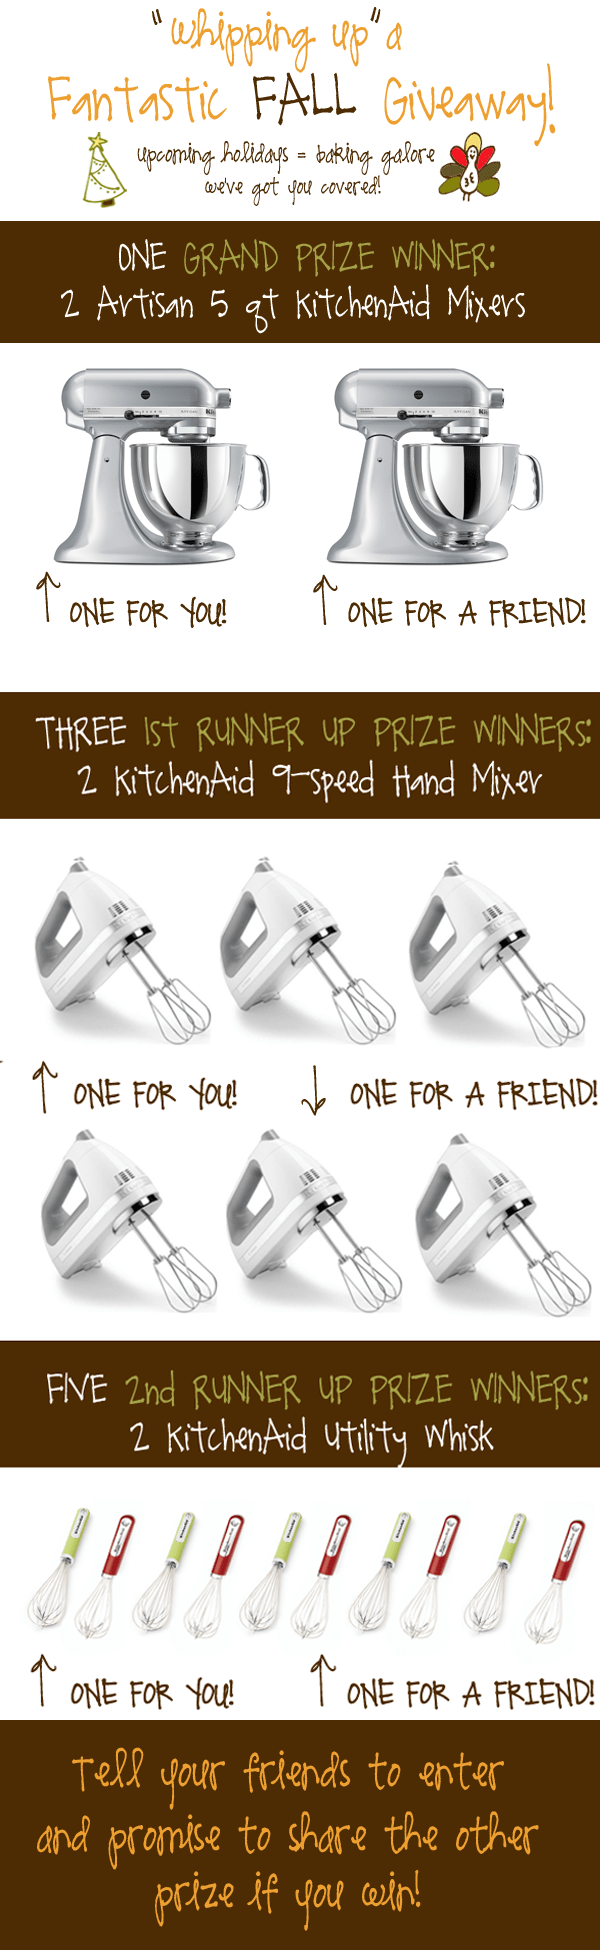 Fall Giveaway: KitchenAid Mixers!